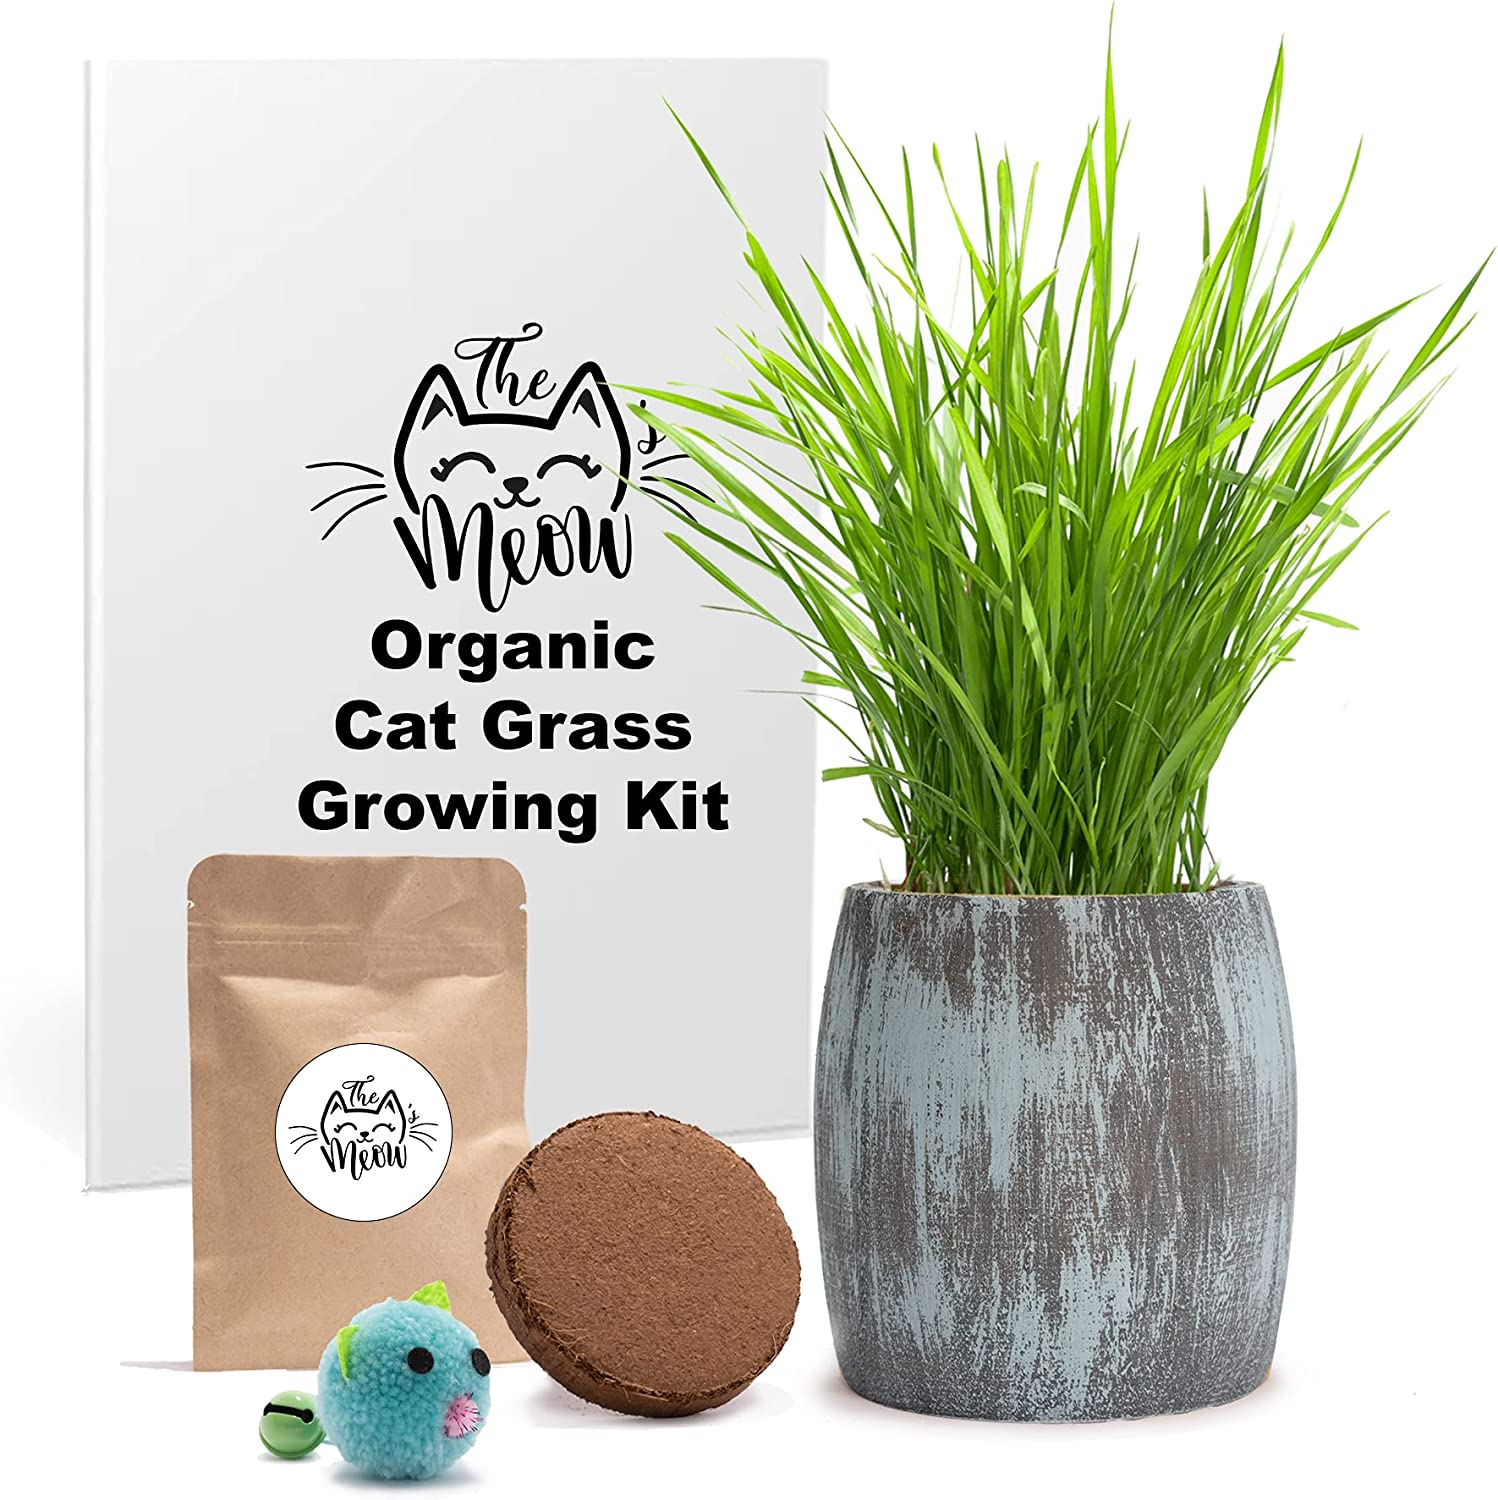 Organic Cat Our shop OFFers the best service Grass Seeds Kit New arrival - for 3 Growing' Soil.